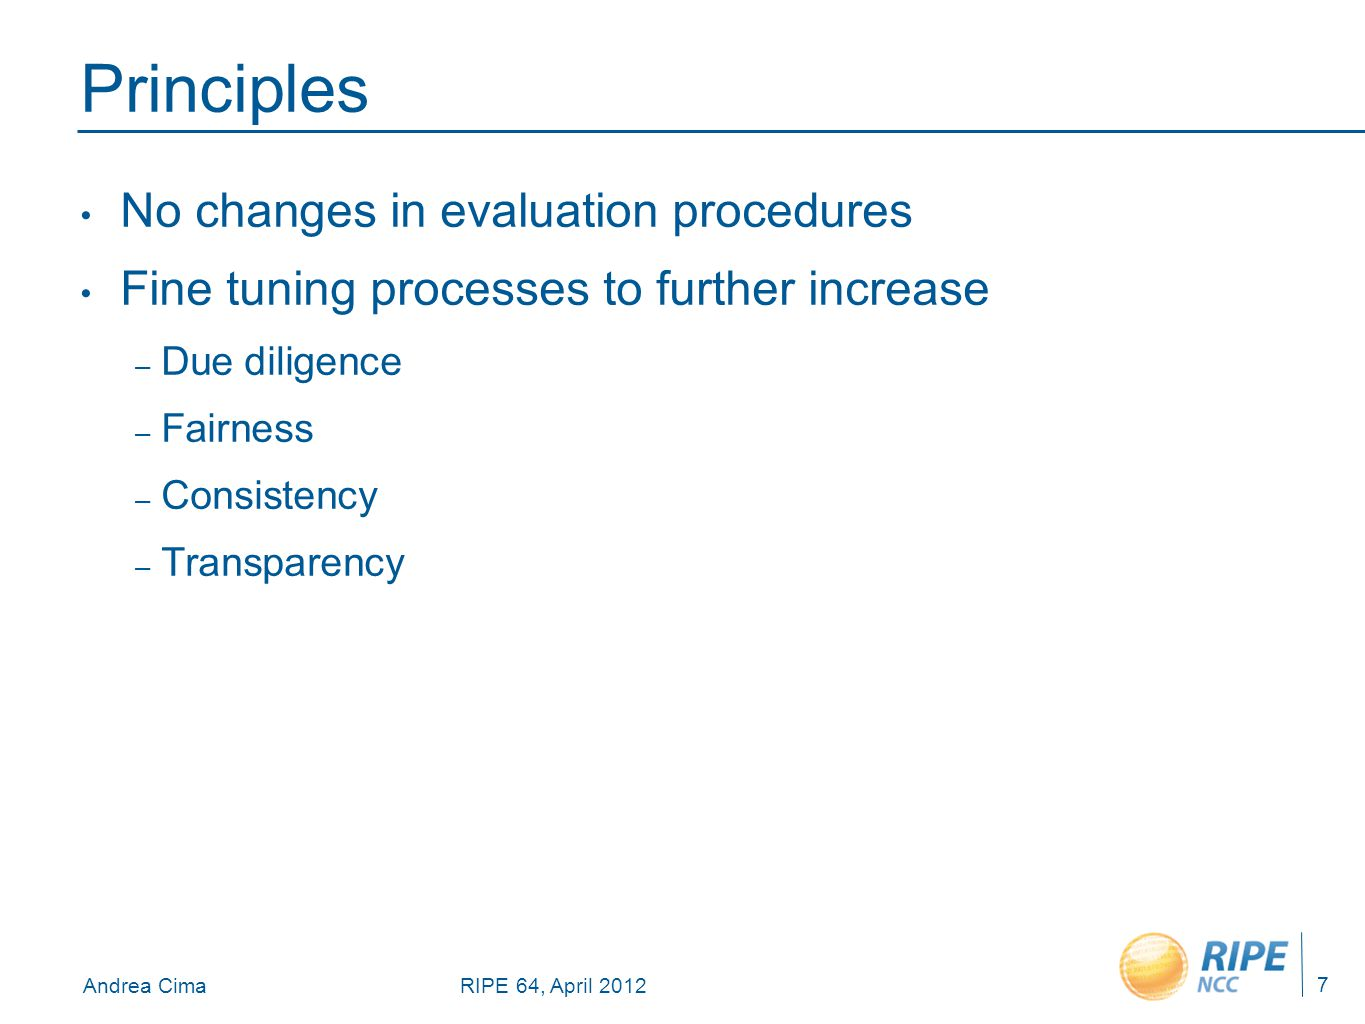 Andrea CimaRIPE 64, April 2012 Principles No changes in evaluation procedures Fine tuning processes to further increase – Due diligence – Fairness – Consistency – Transparency 7